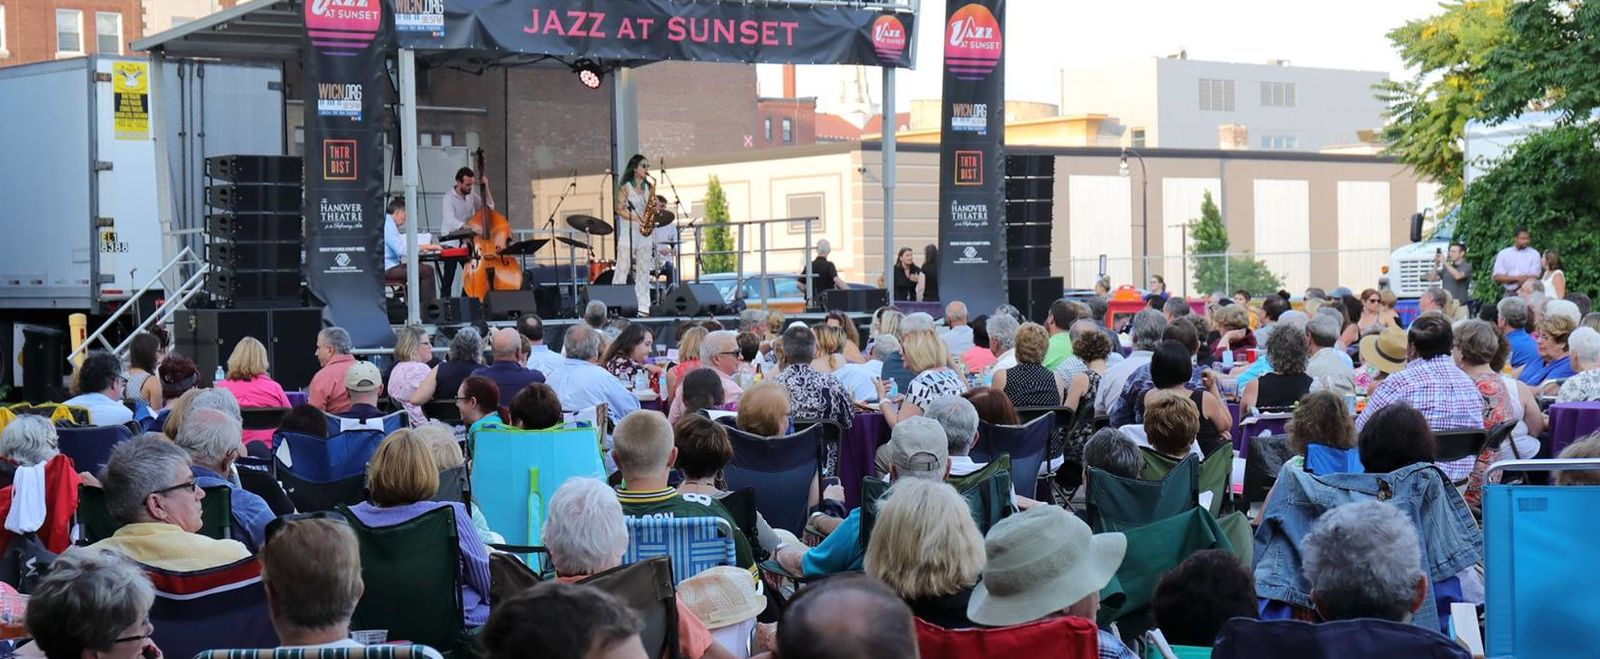 A crowd watches a woman singer in Worcester at a Jazz at Sunset concert.